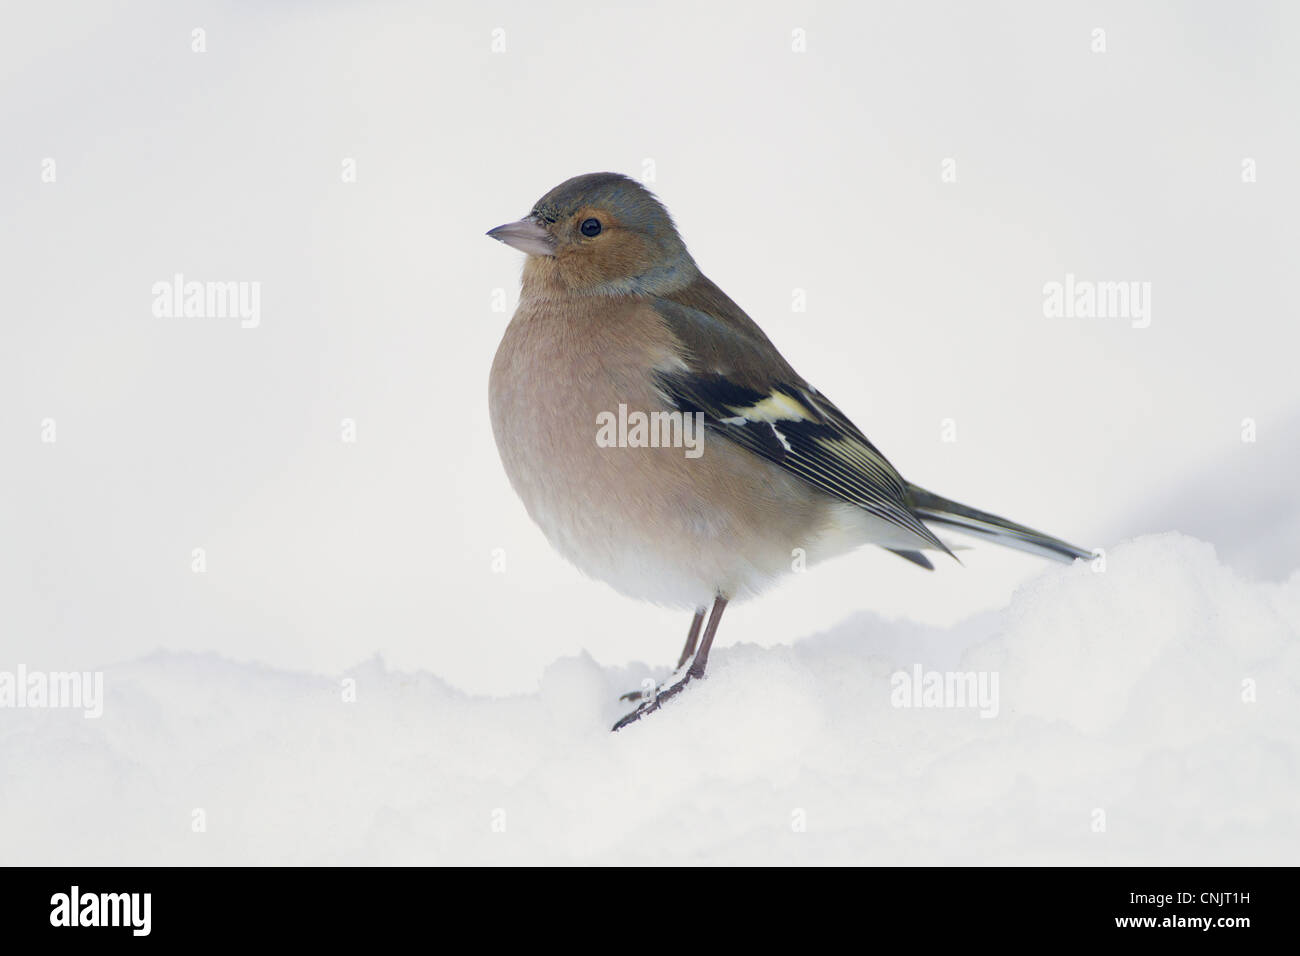 Chaffinch (Fringilla coelebs) adult male, standing in snow covered garden, Chirnside, Berwickshire, Scotland, december - Stock Image